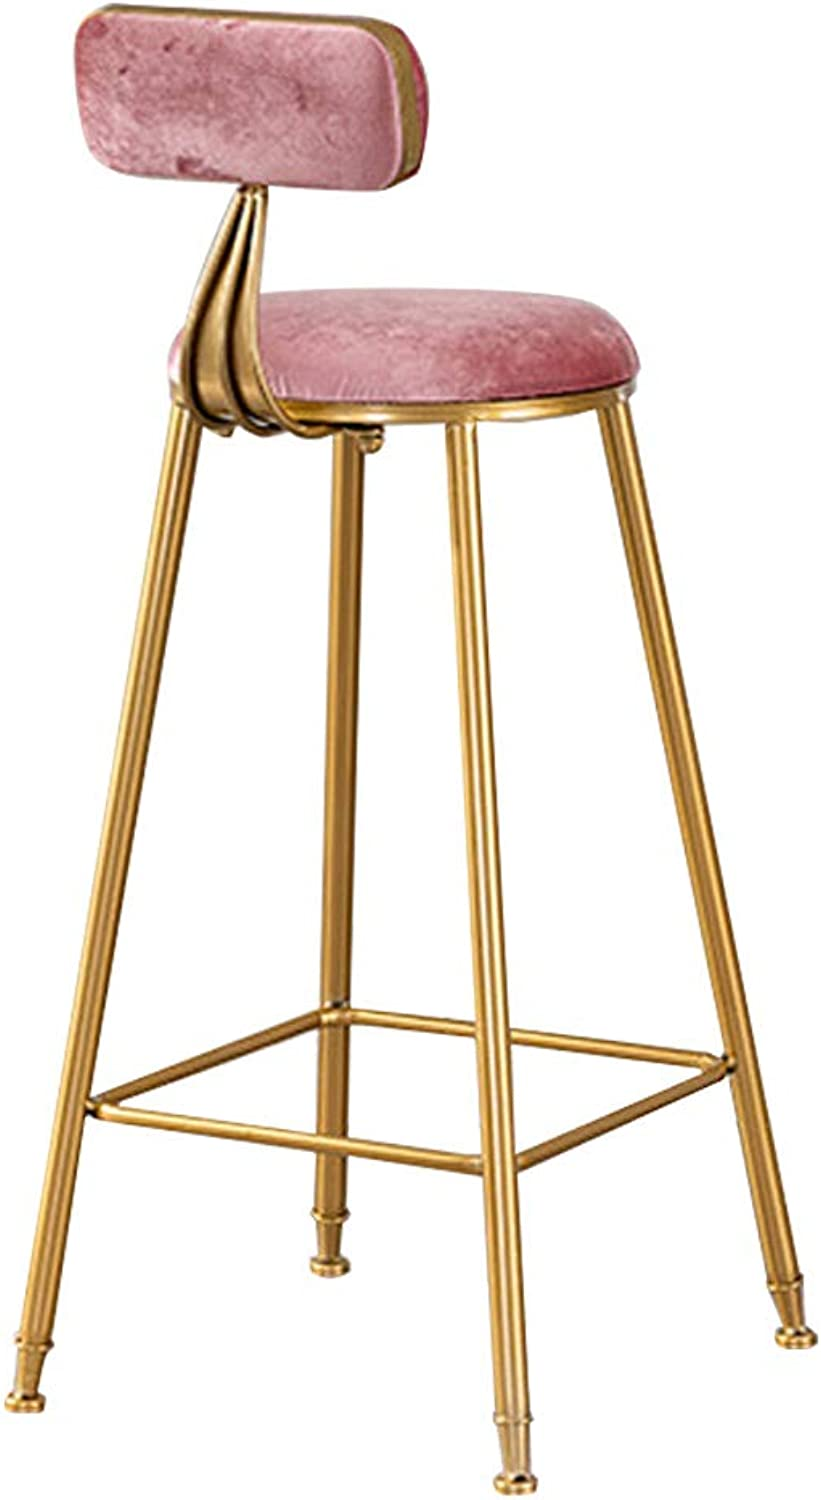 Modern Barstools Footrest Chair for Bar Pub Kitchen Breakfast Bar Stool with Back Counter Height   Side Dining Chair with Metal Leg and Velvet Seat,Pink